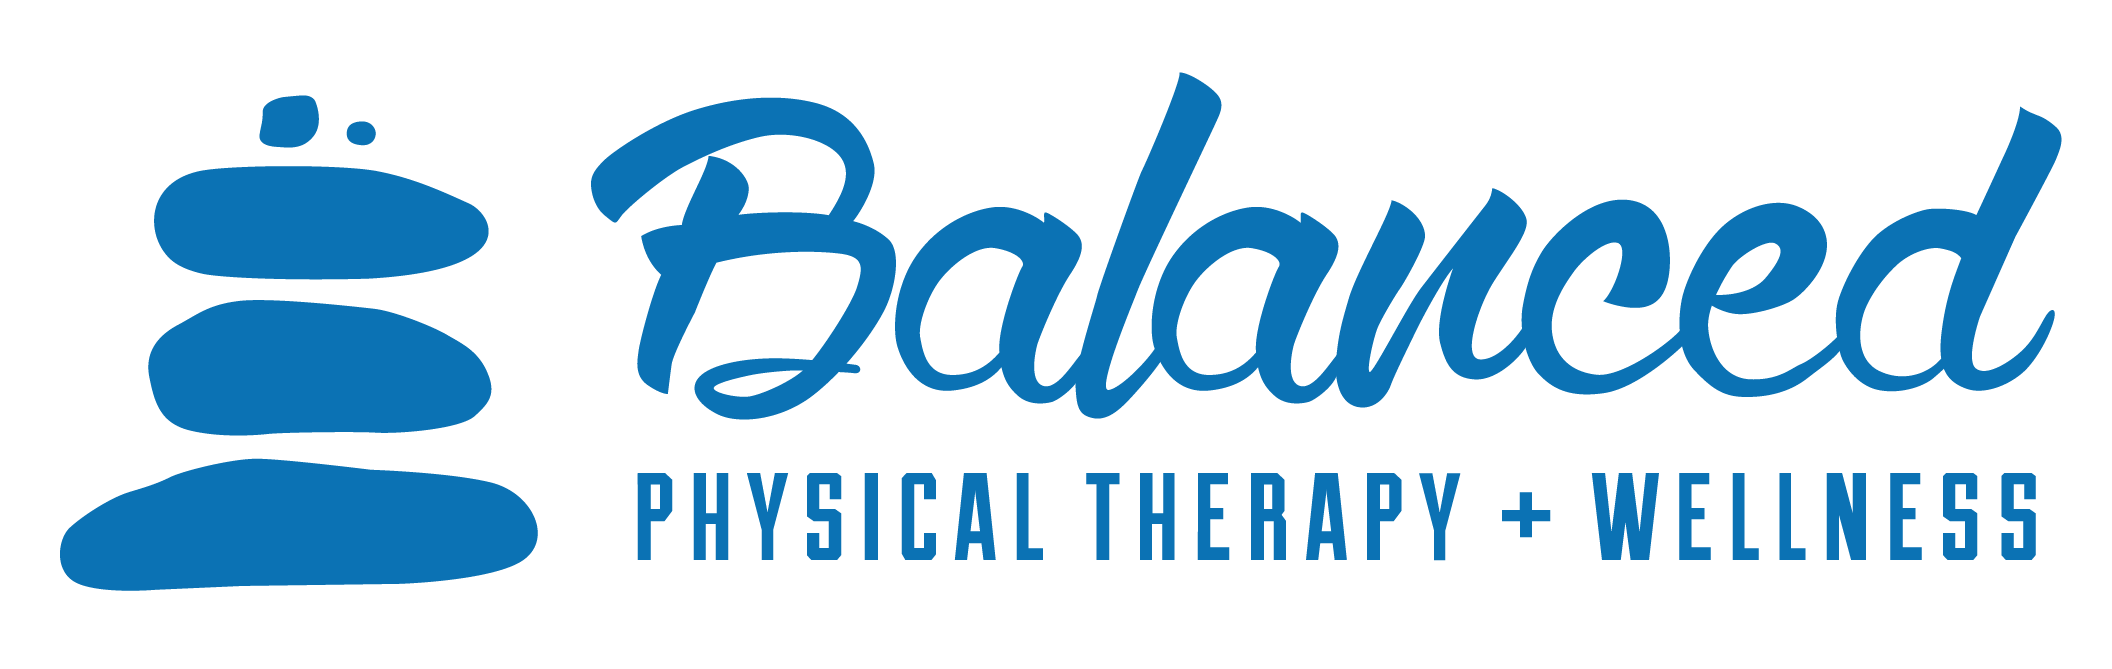 Balanced Physical Therapy